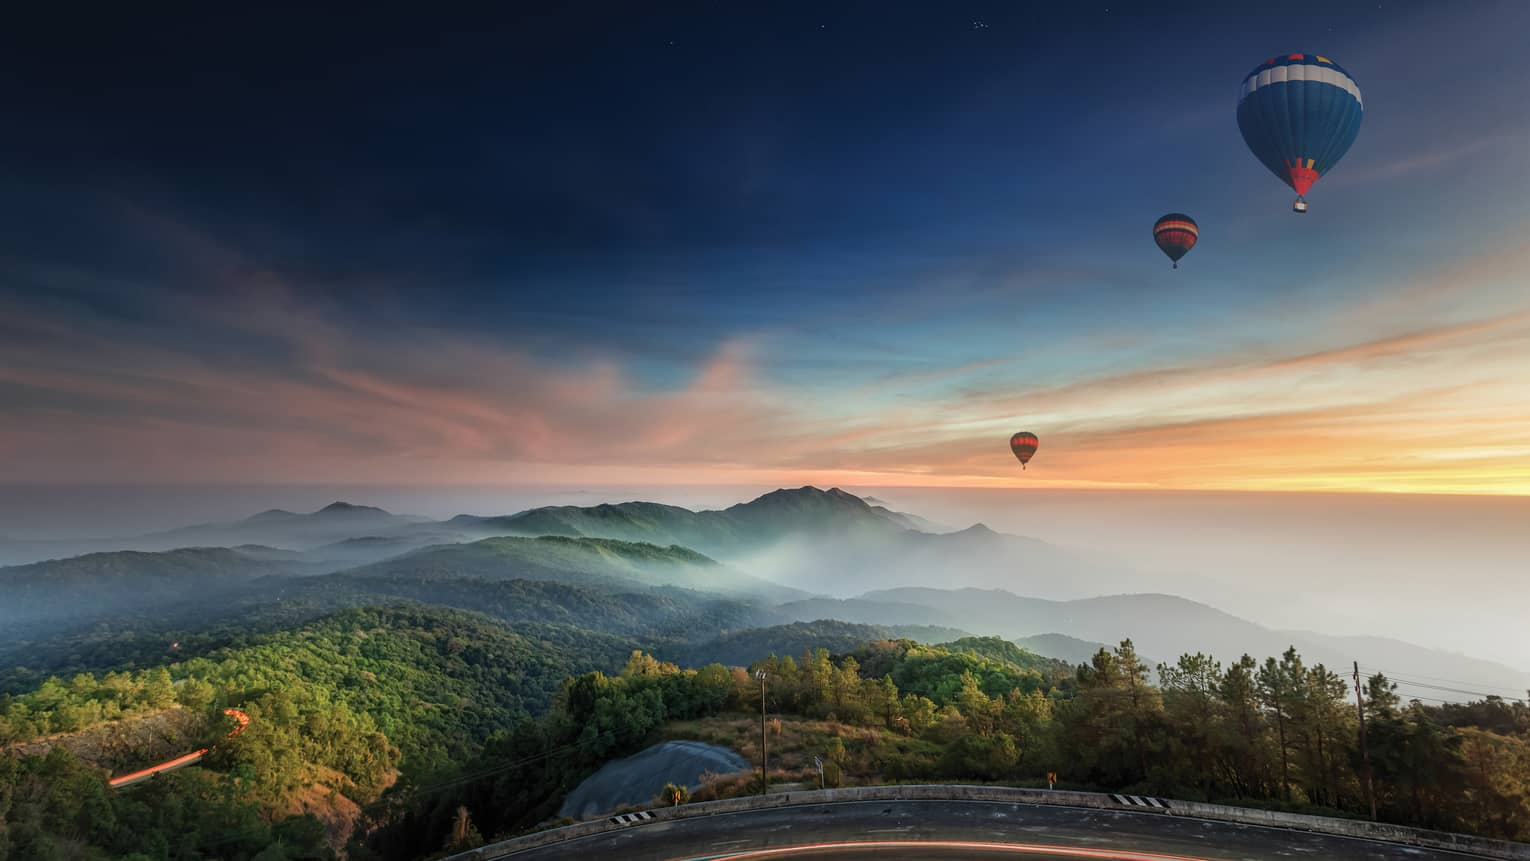 Hot air balloons fly over Chiang Mai at sunrise, mountains in distance